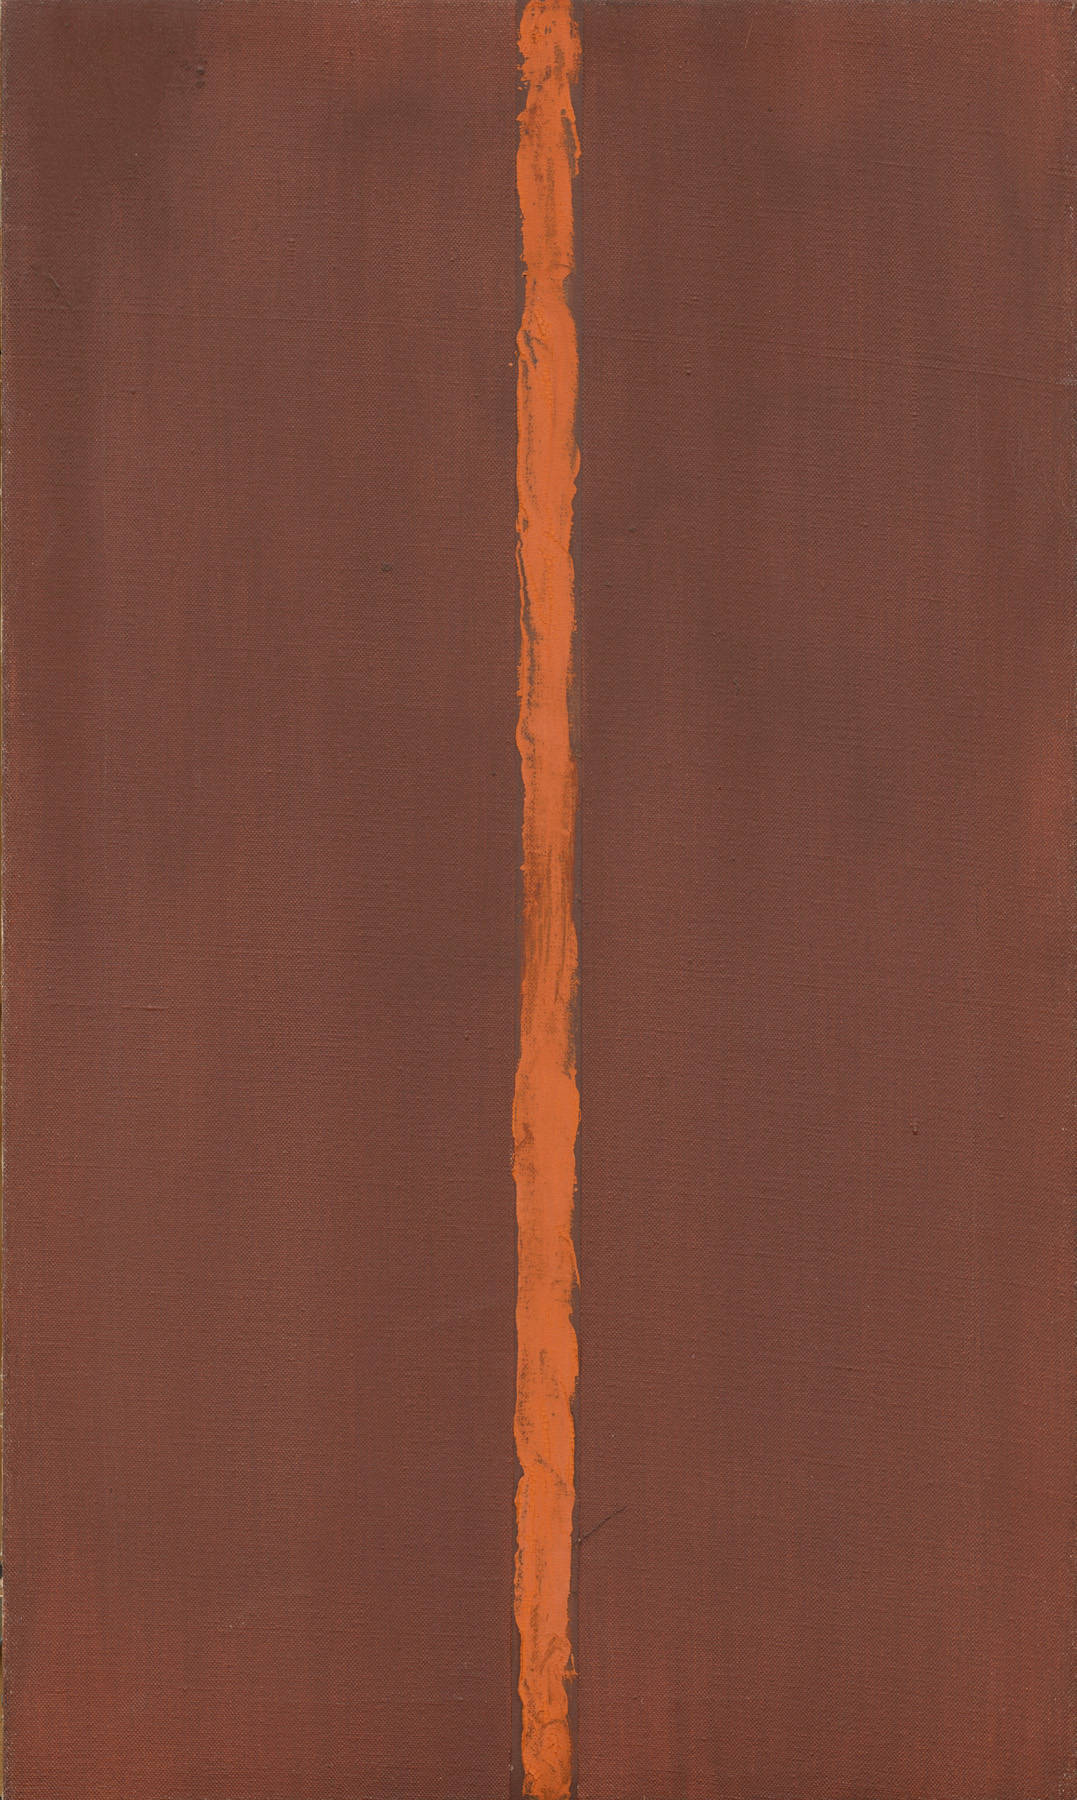 barnett newman Mitternacht blau by barnett newman is a serigraph, also known as a silk screen, is created by a process in which multiple layers of ink are manually pressed through f.